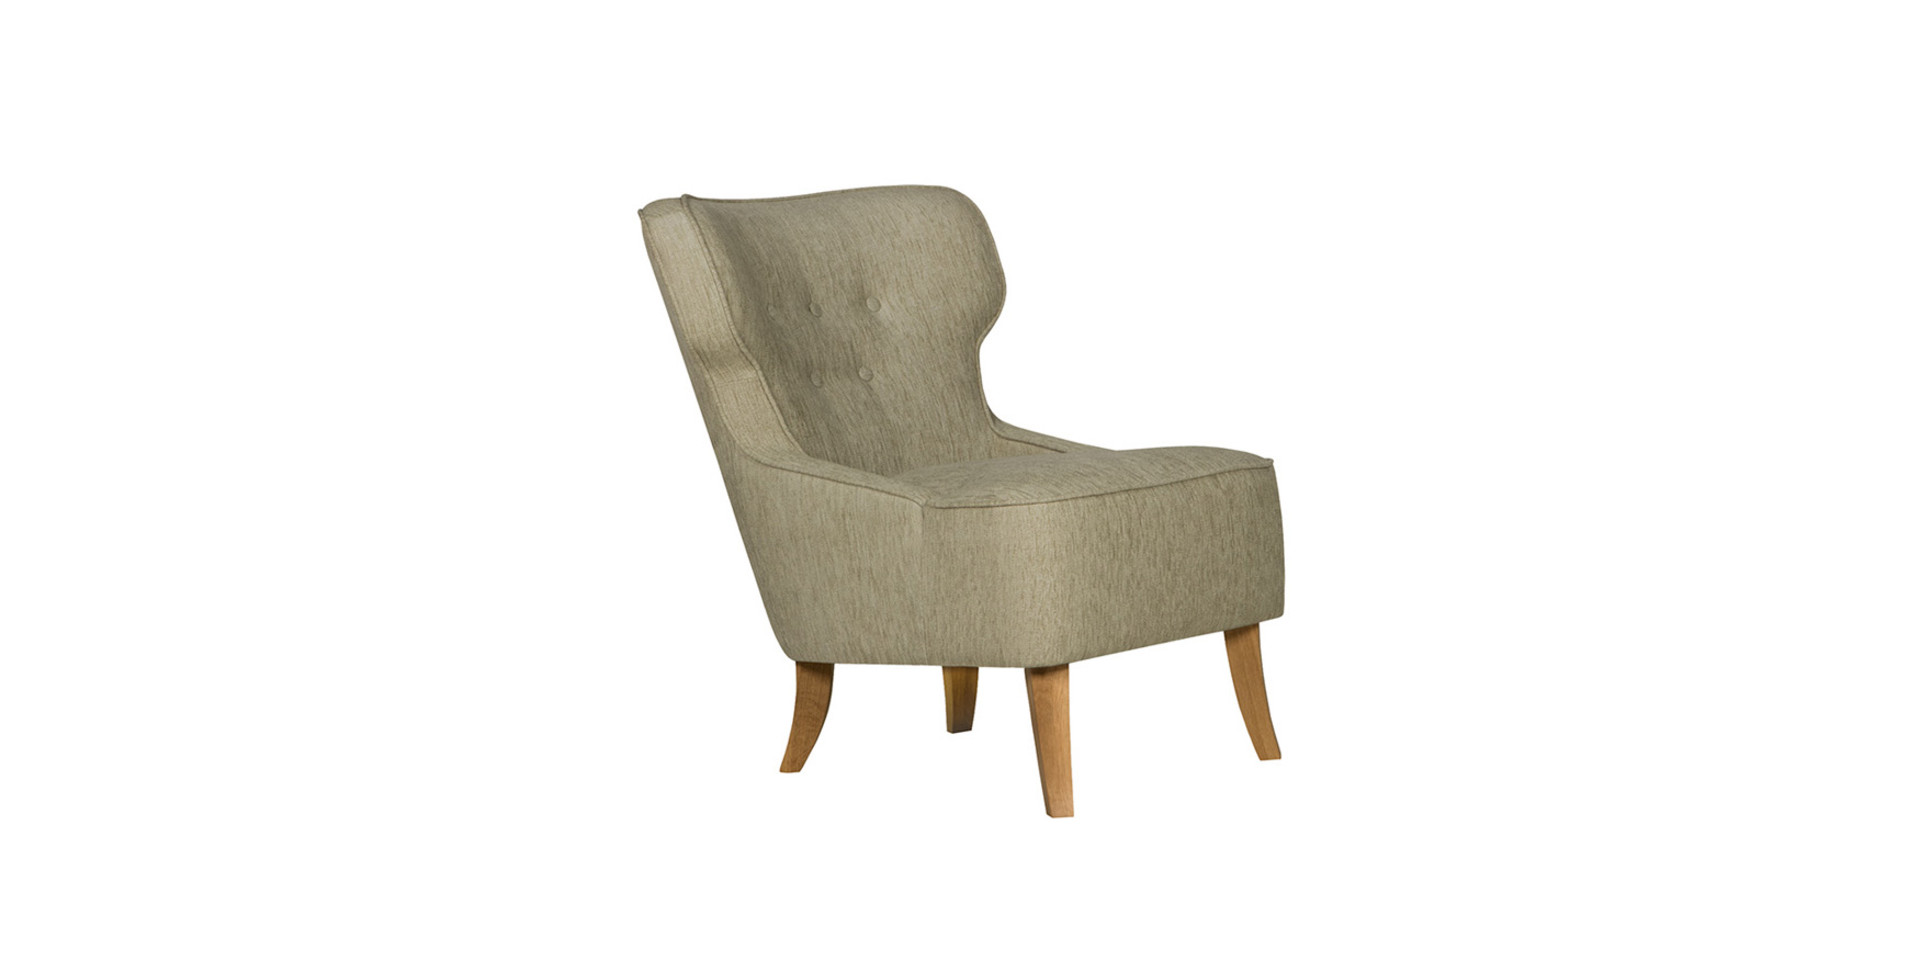 LISA_armchair_risco_runner6_light_olive_2